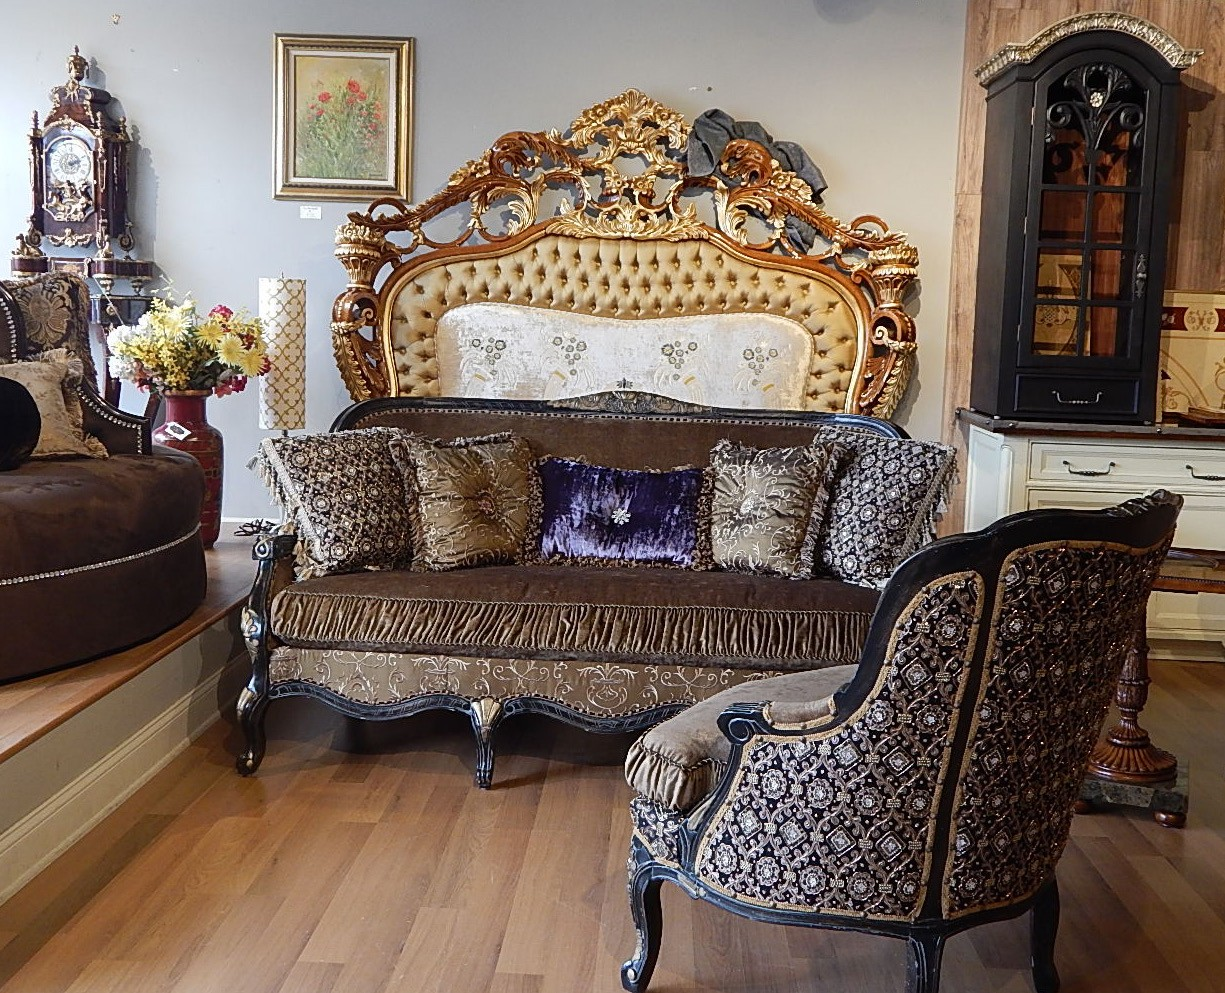 22 Victorian Style Sofa With A Black And Gold Color Theme